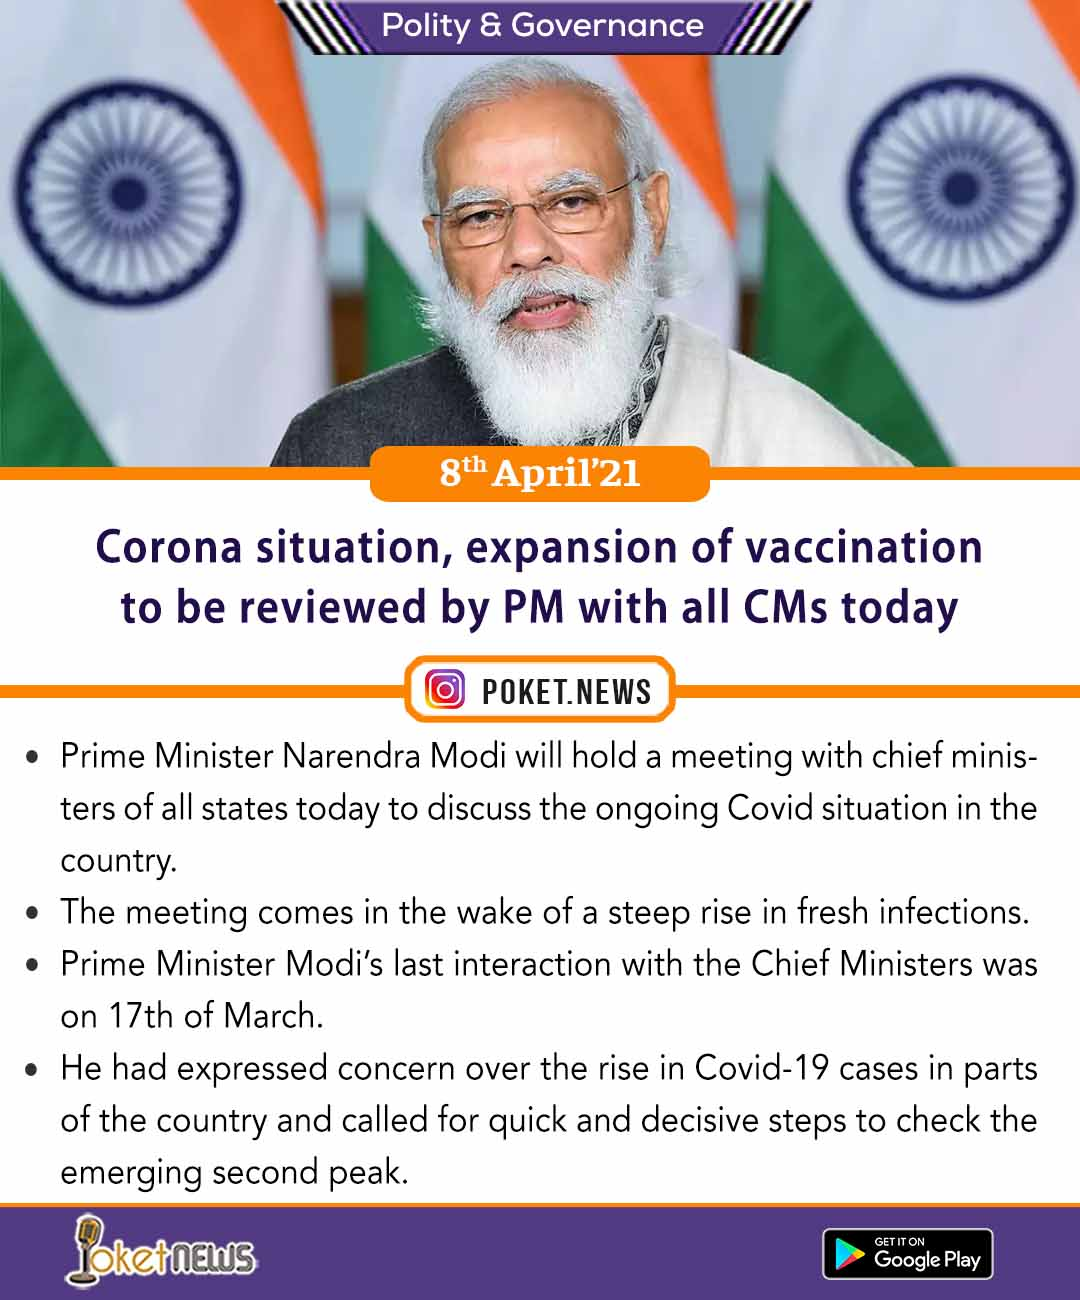 Corona situation, expansion of vaccination to be reviewed by PM with all CMs today